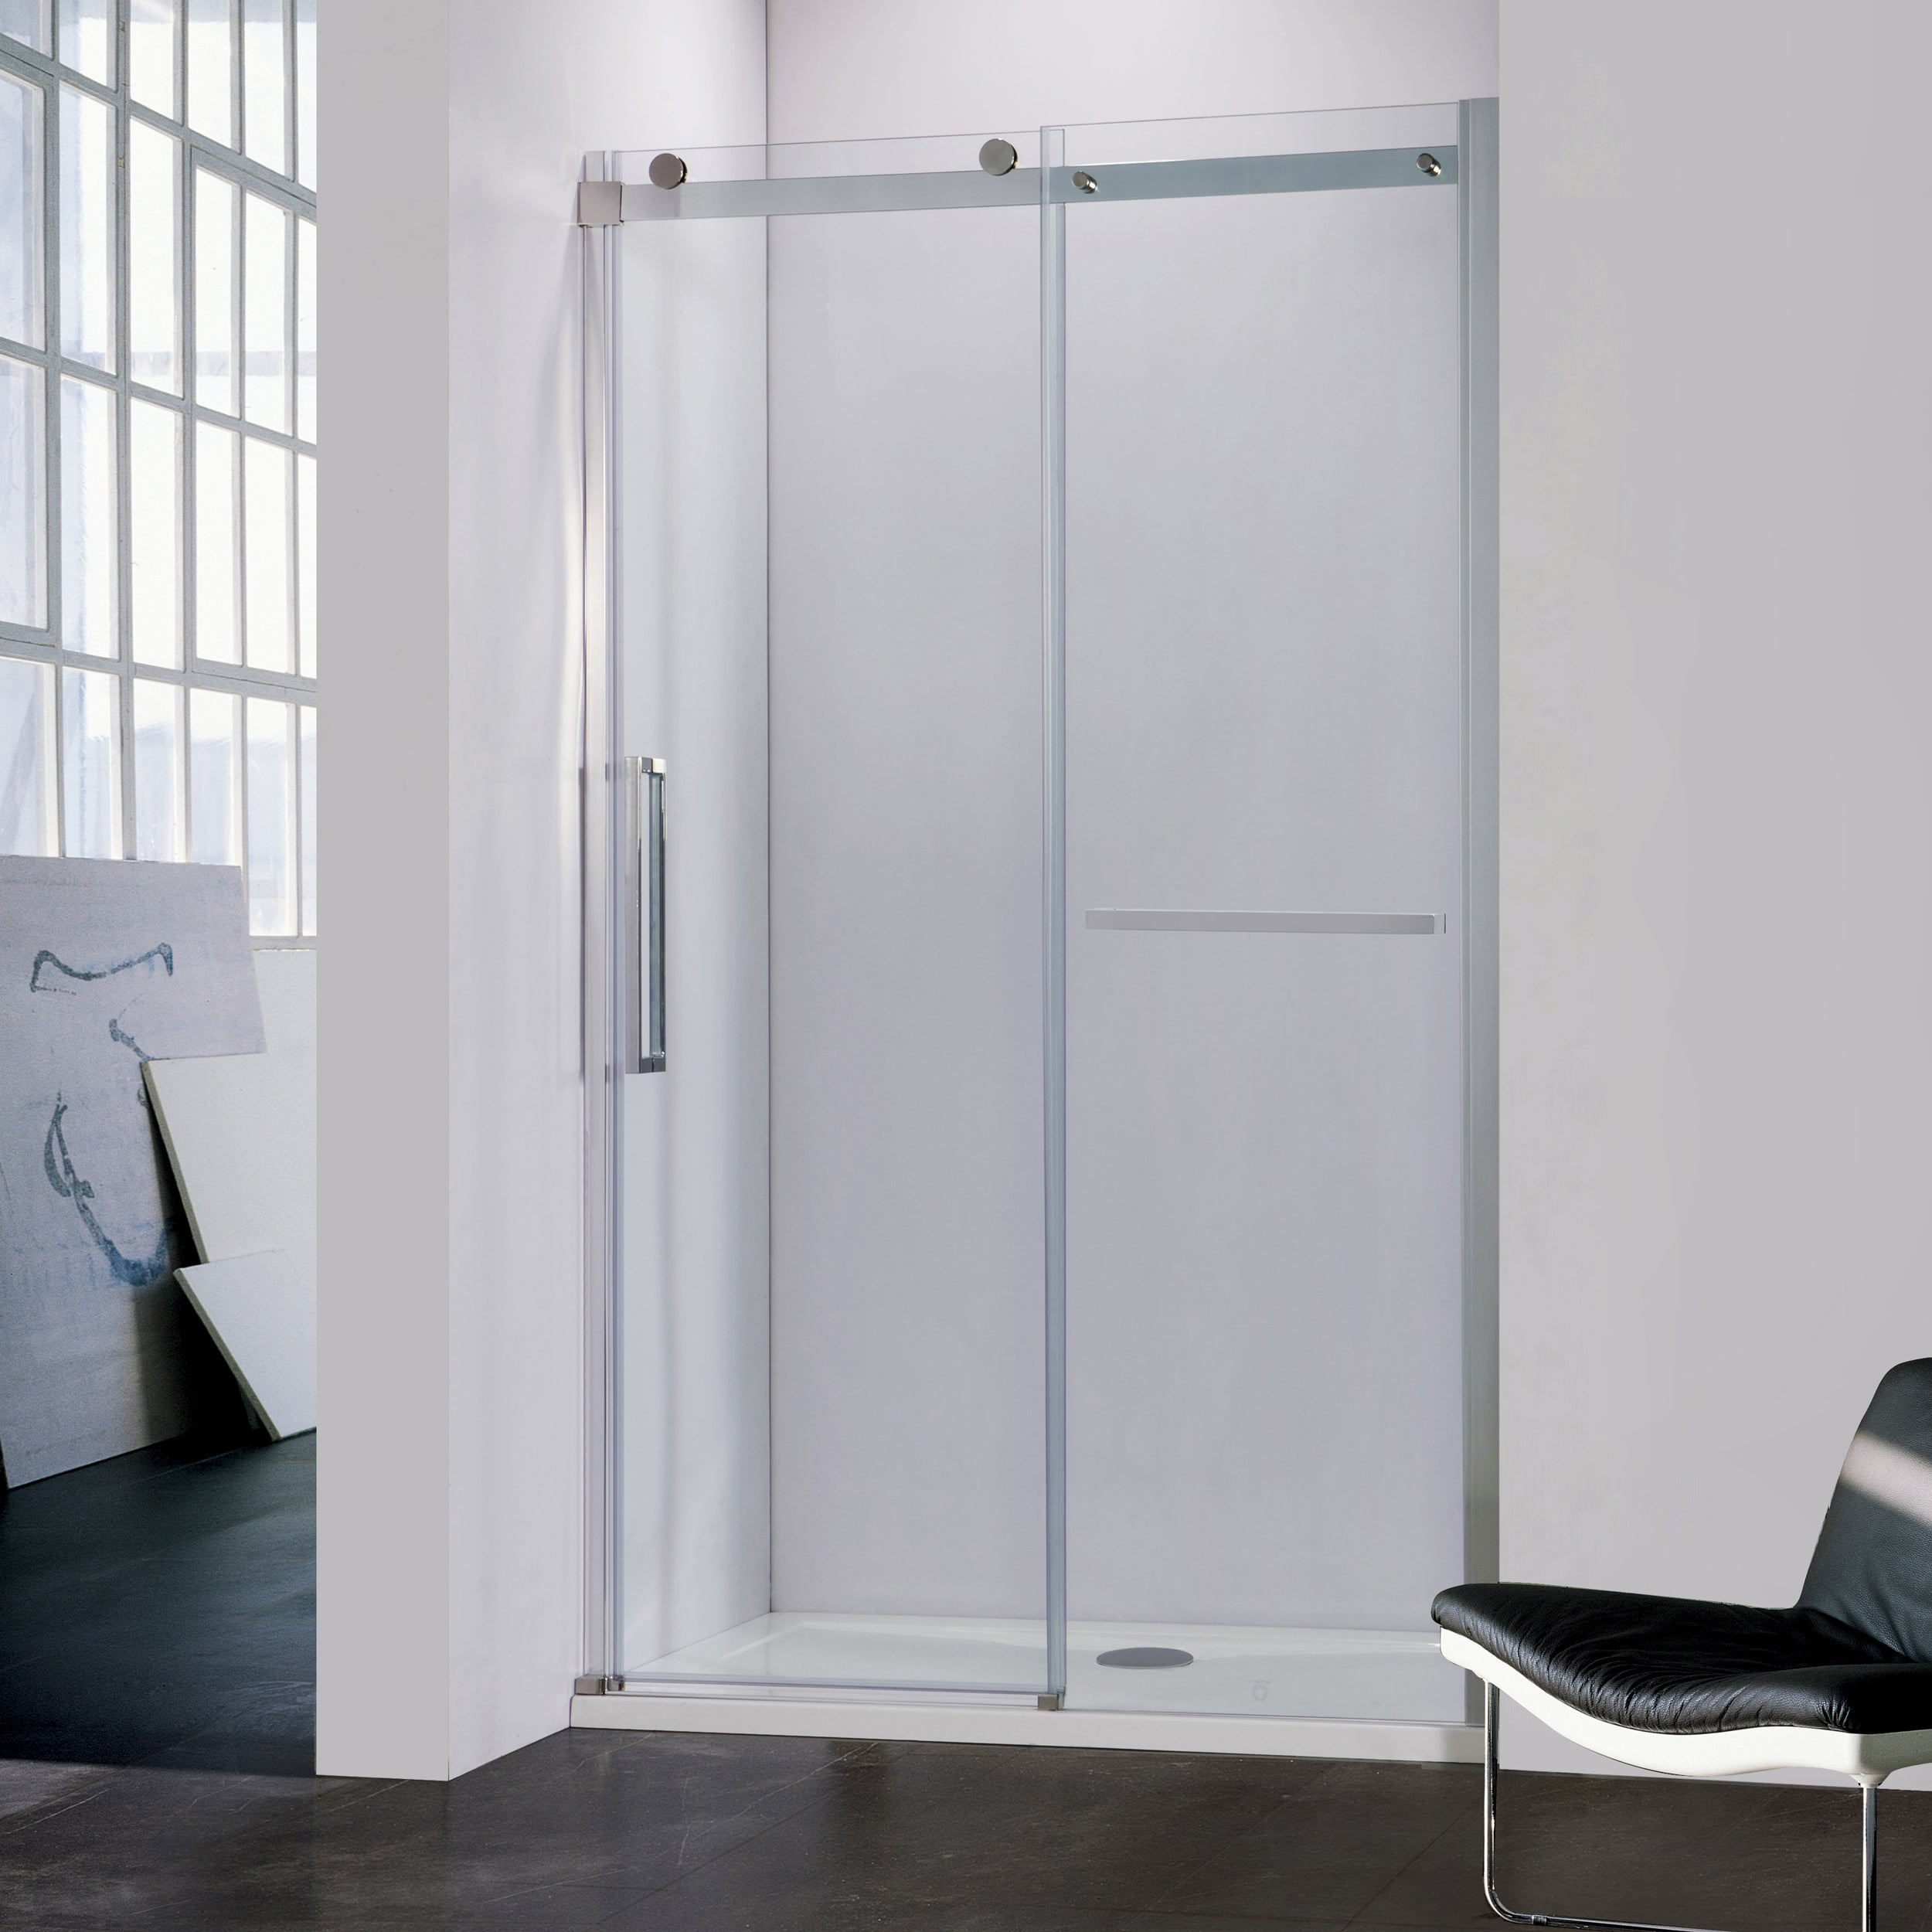 Bai 0922 Frameless Sliding Glass Shower Enclosure 60 Megabai